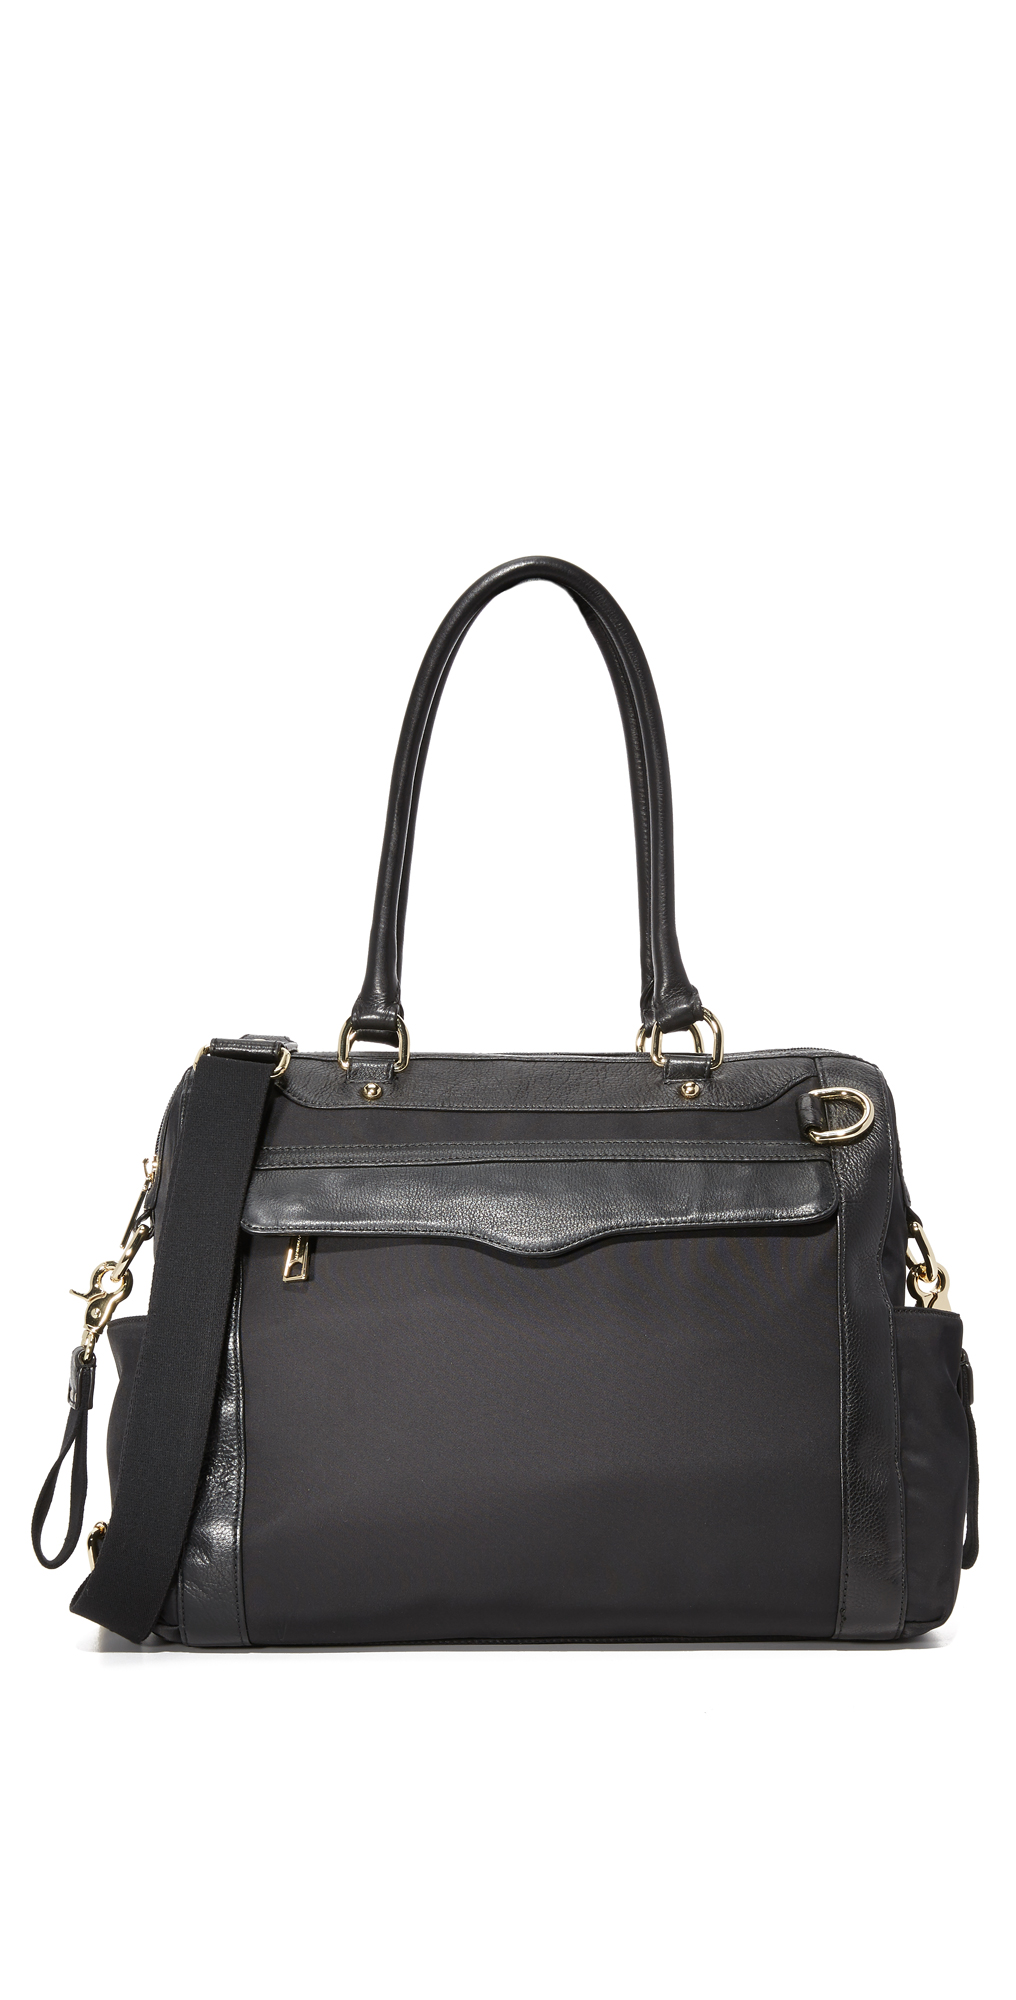 Knocked Up Baby Bag Rebecca Minkoff